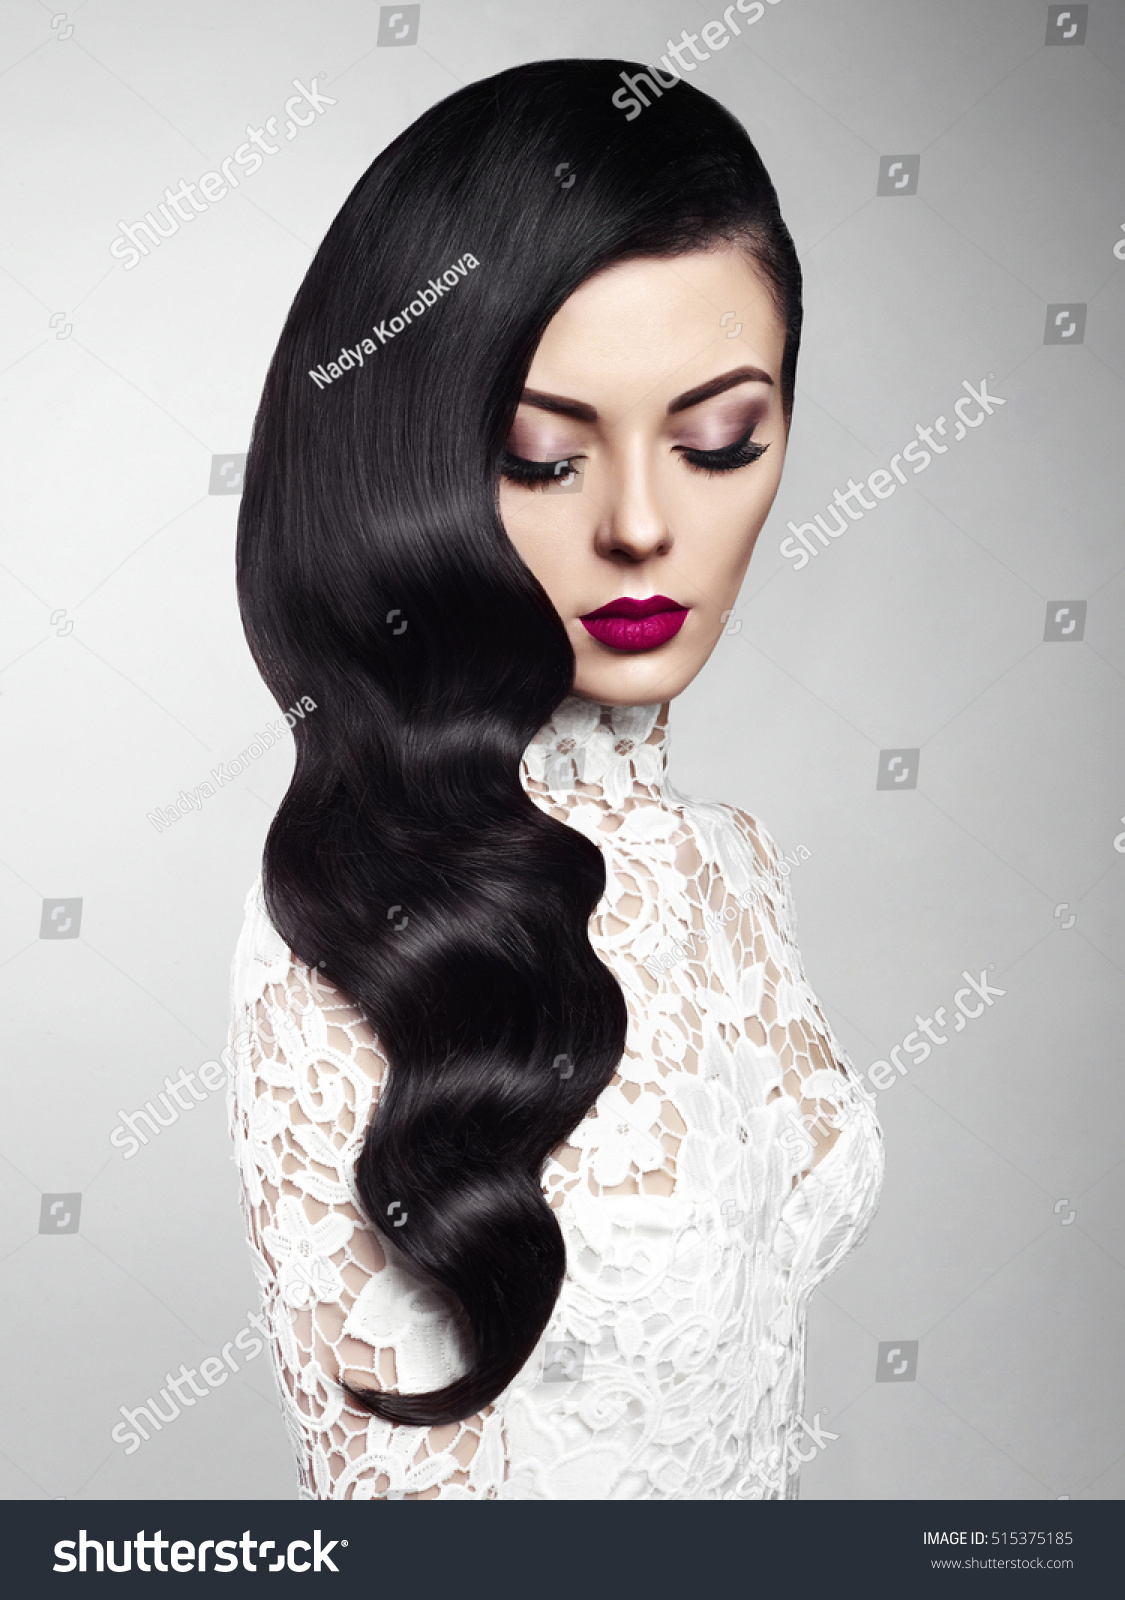 Fashion Studio Photo Beautiful Model Girl Stock Photo (Royalty Free ...